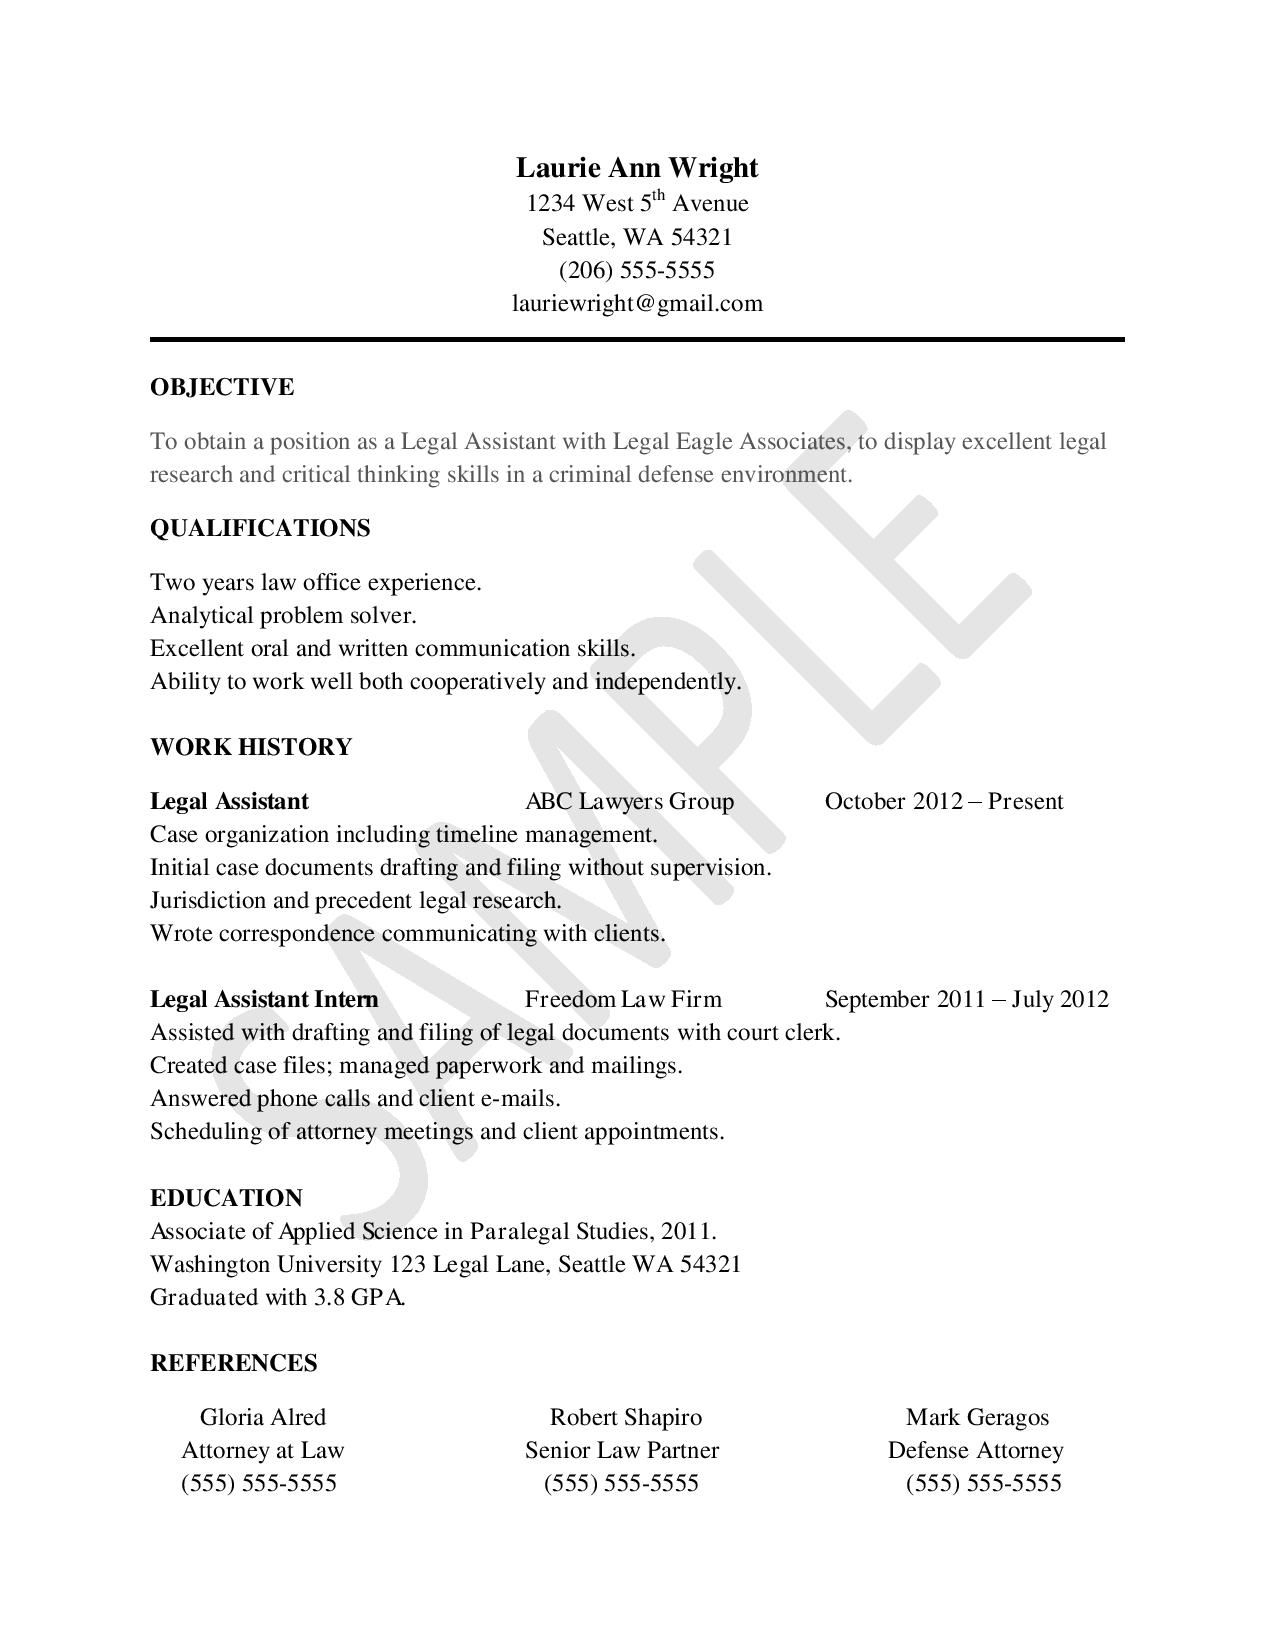 sample resume for legal assistants - Sample Picture Of A Resume